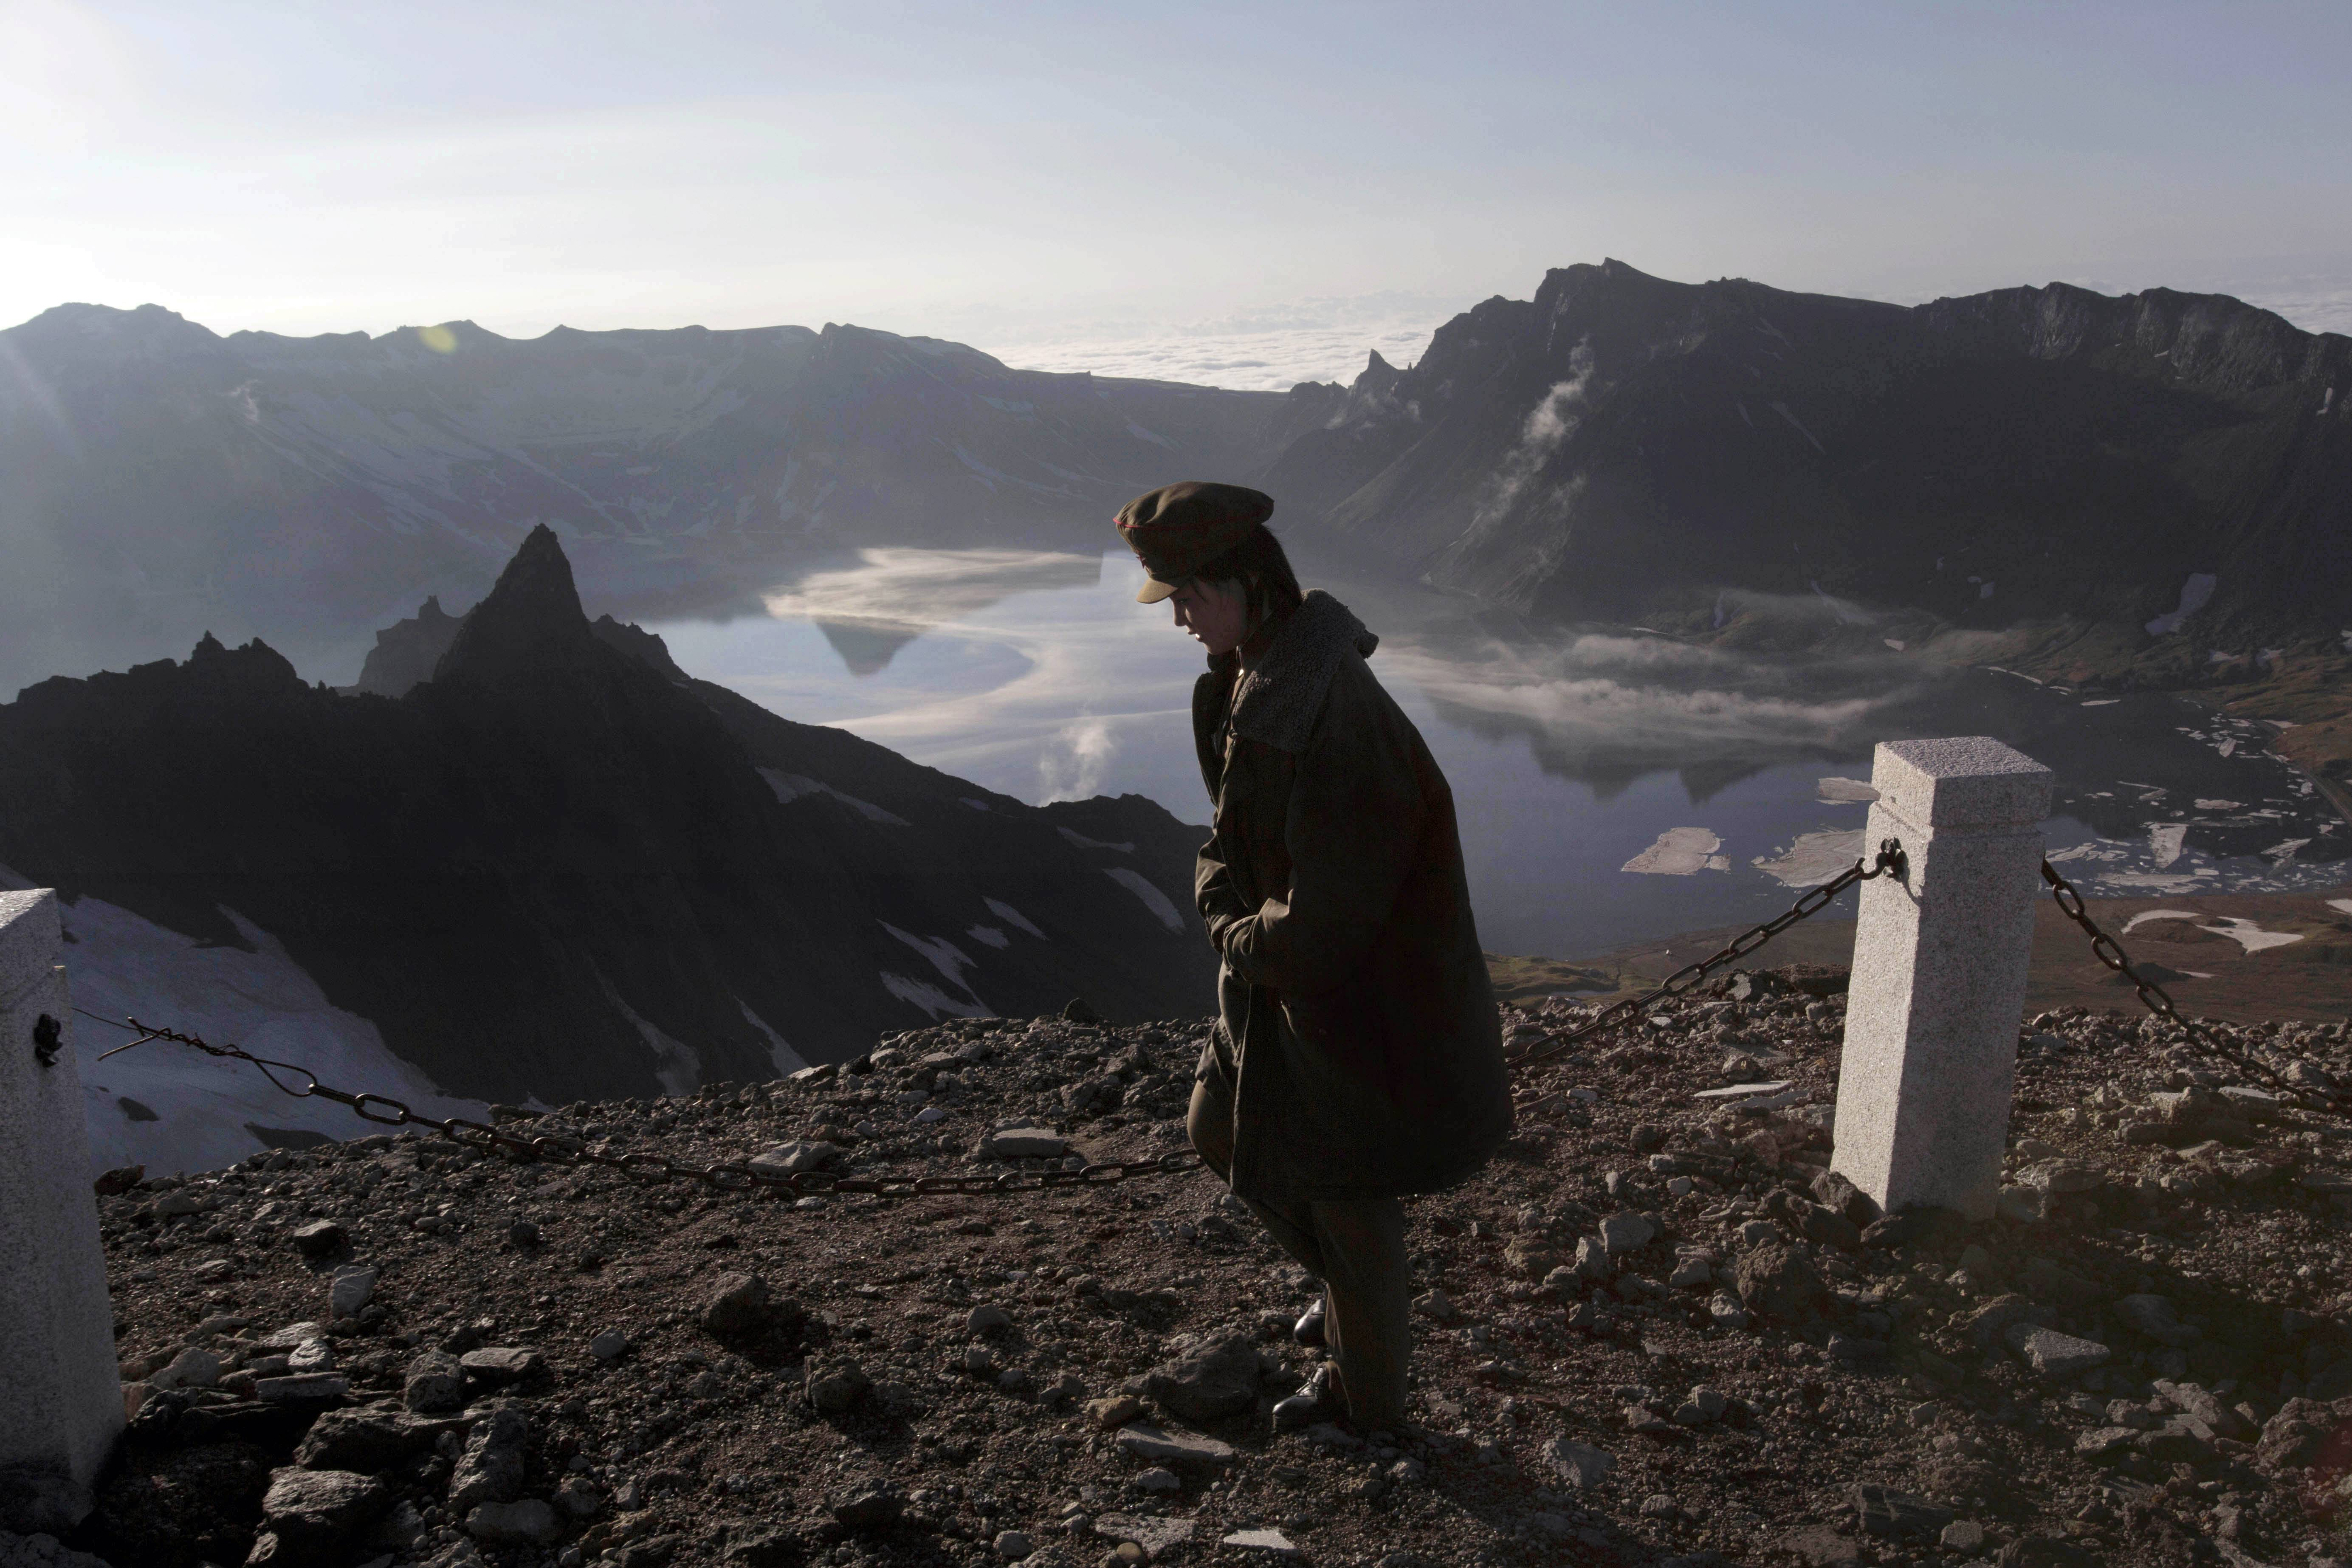 A North Korean woman walks on the peak of Mt. Paektu in North Korea's Ryanggang province. Unlike other major volcanos around the world, the remote and politically sensitive Mount Paektu remains almost a complete mystery to foreign scientists who have -- until recently -- been unable to conduct on-site studies.